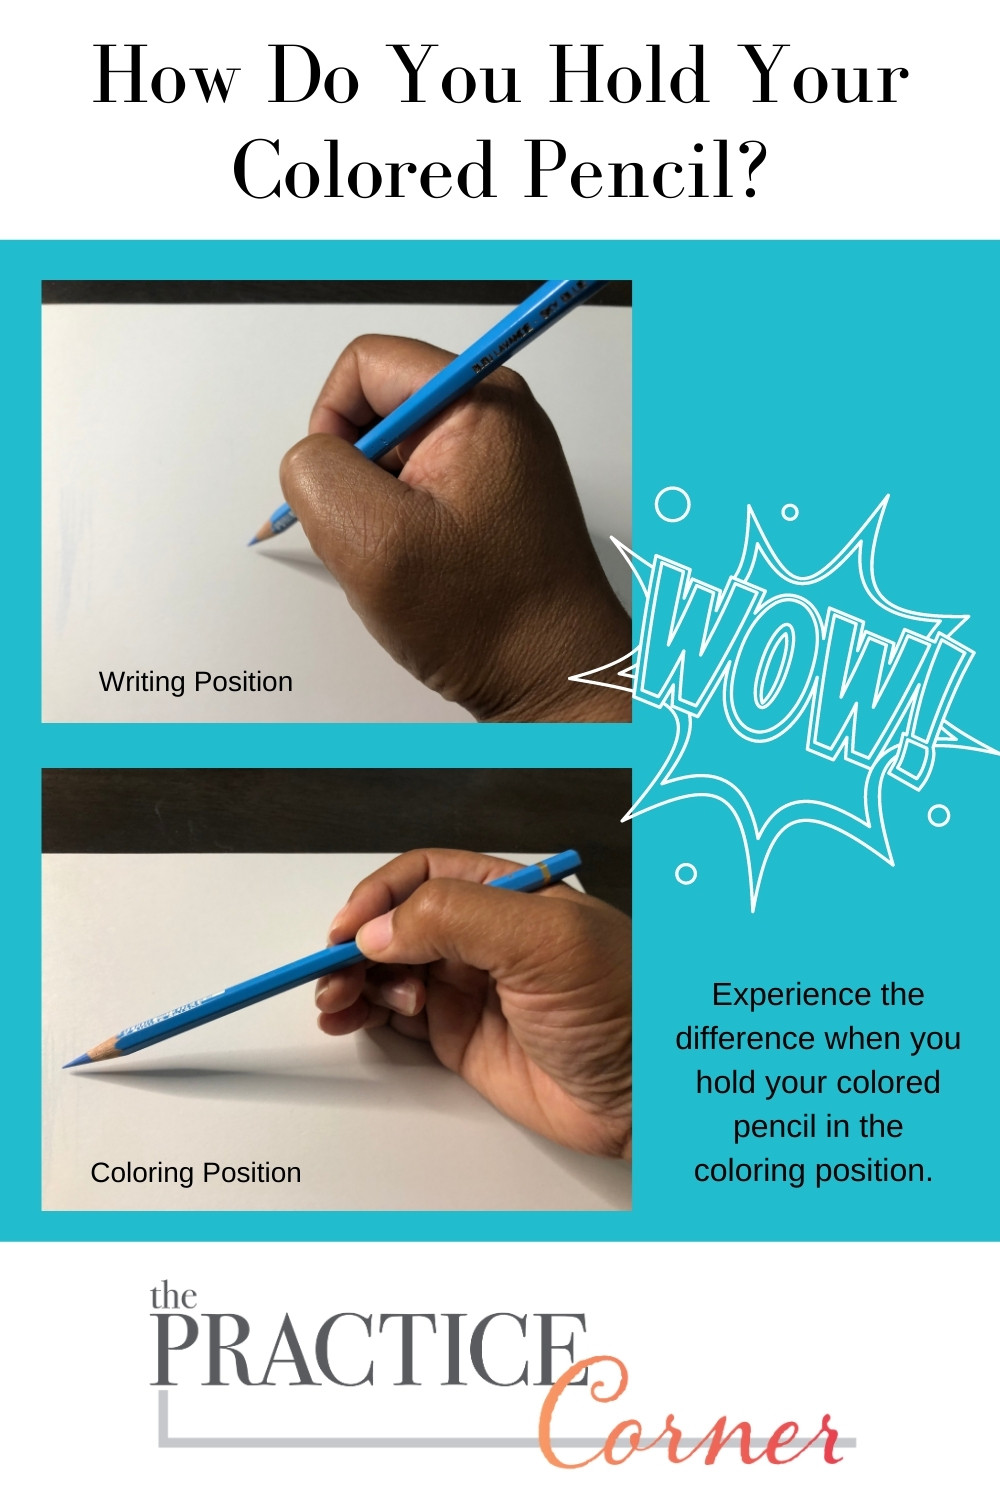 How to hold a colored pencil for coloring. | The Practice Corner | #howtoimproveyourcoloring #coloredpencilpractice